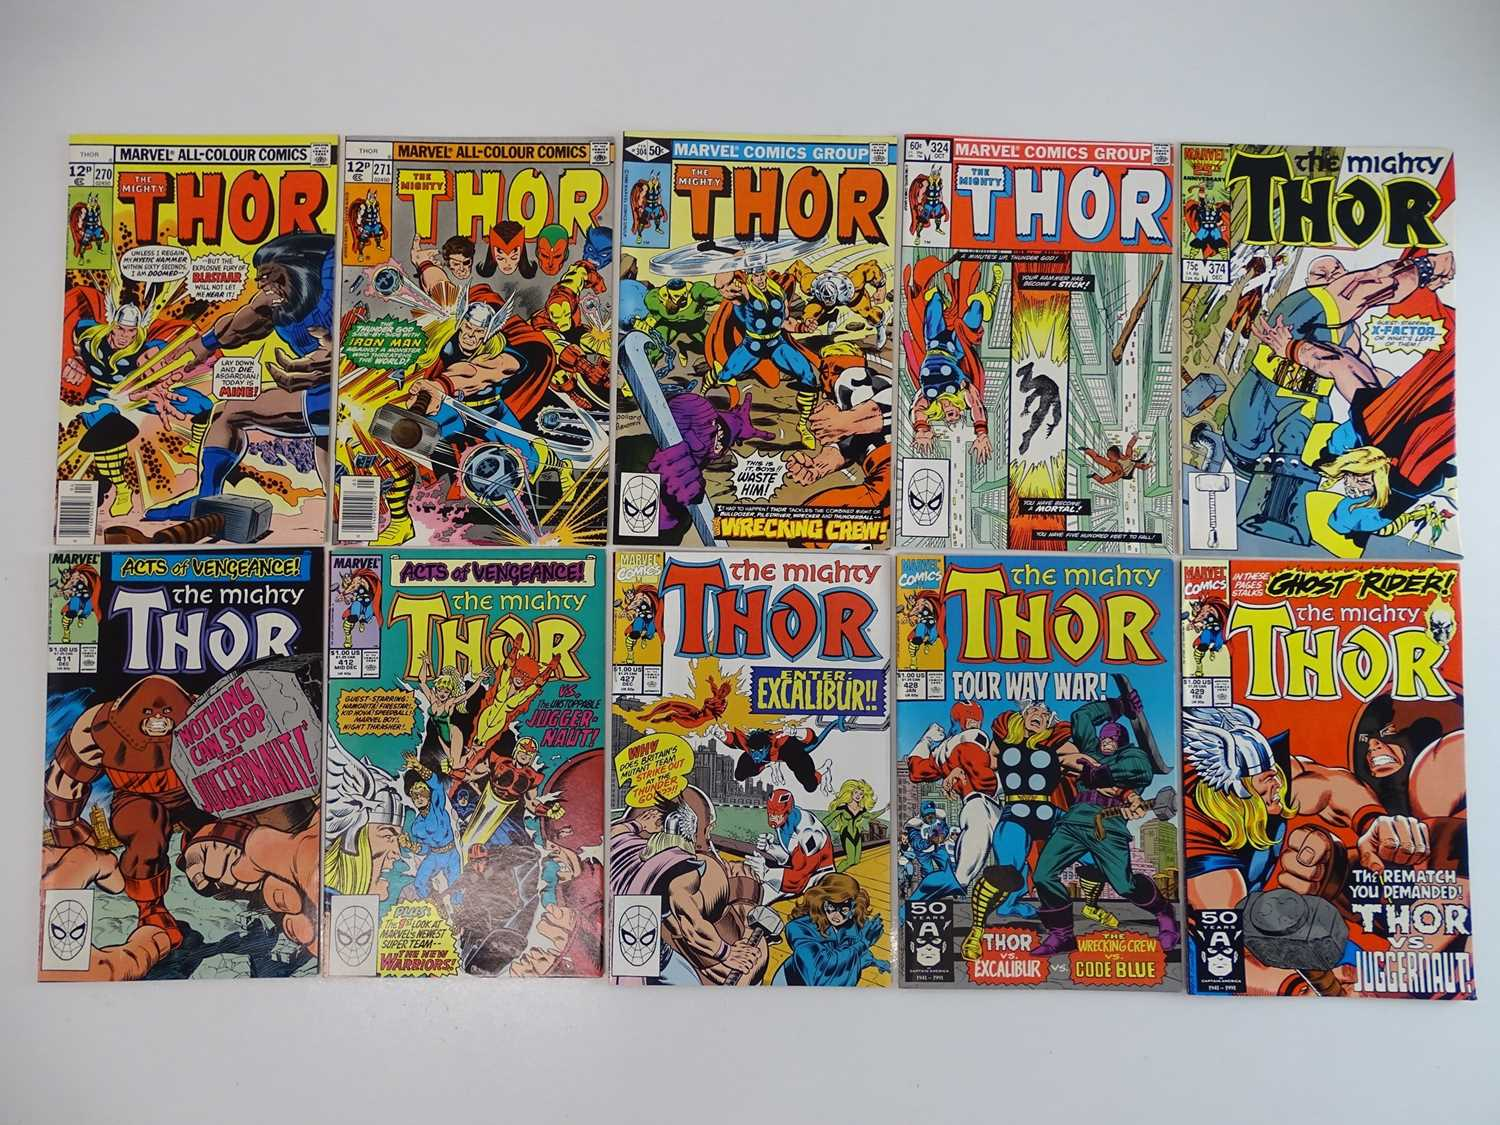 THOR #270, 271, 304, 324, 374, 411, 412, 427, 428, 429 - (10 in Lot) - (1978/90 - MARVEL - US